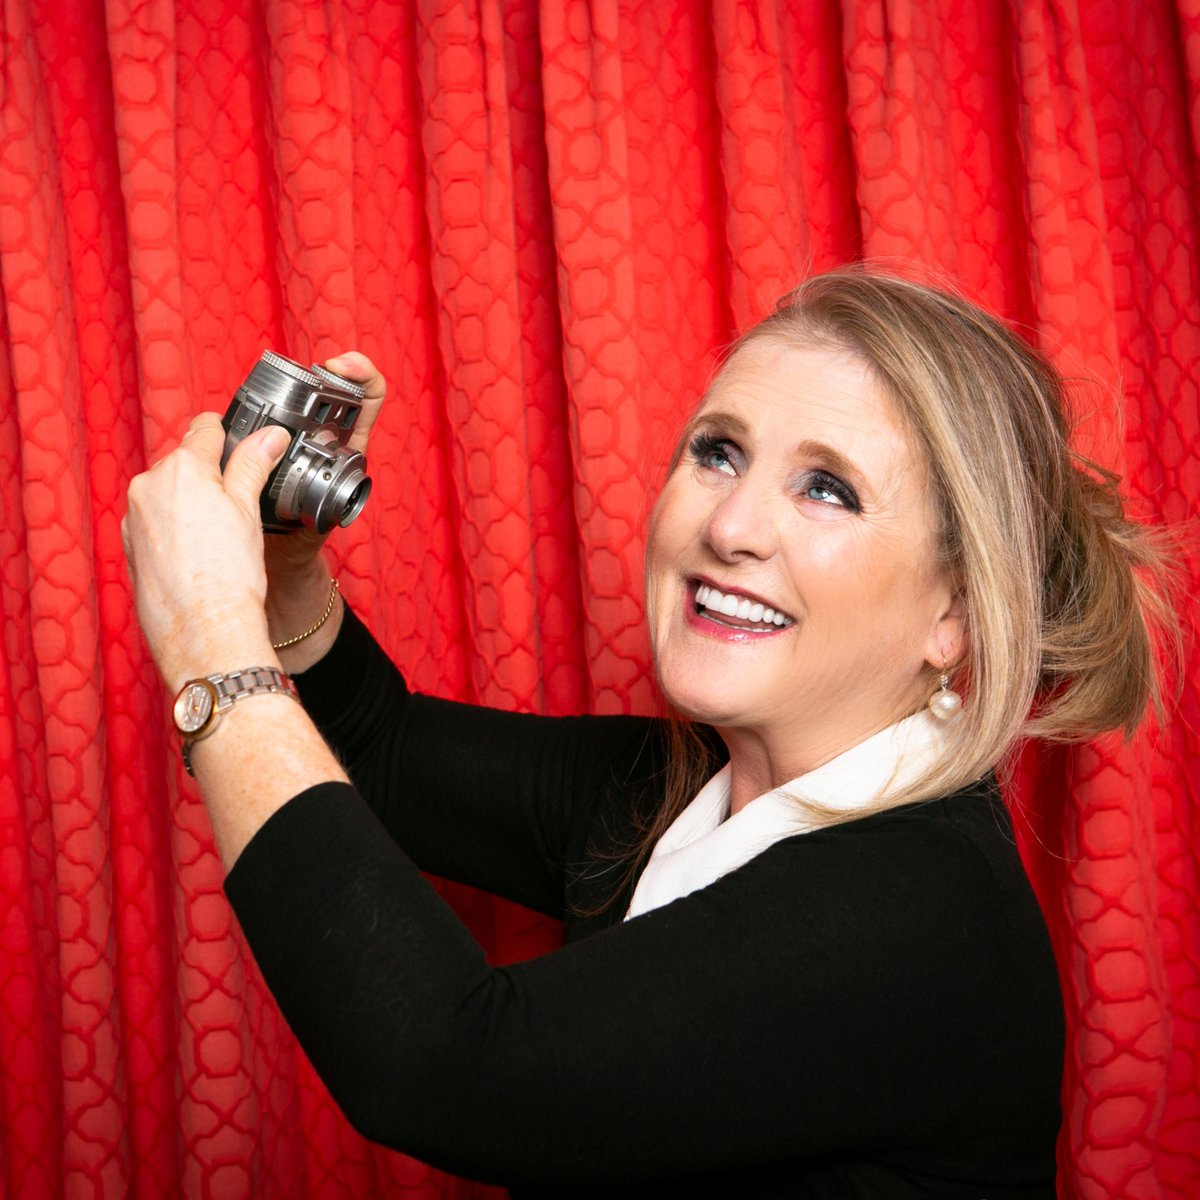 Look...it's the original selfie! LOL #nancycartwright #iloveyouguys #homeis #attitudeofgratitude #ilovemyhome